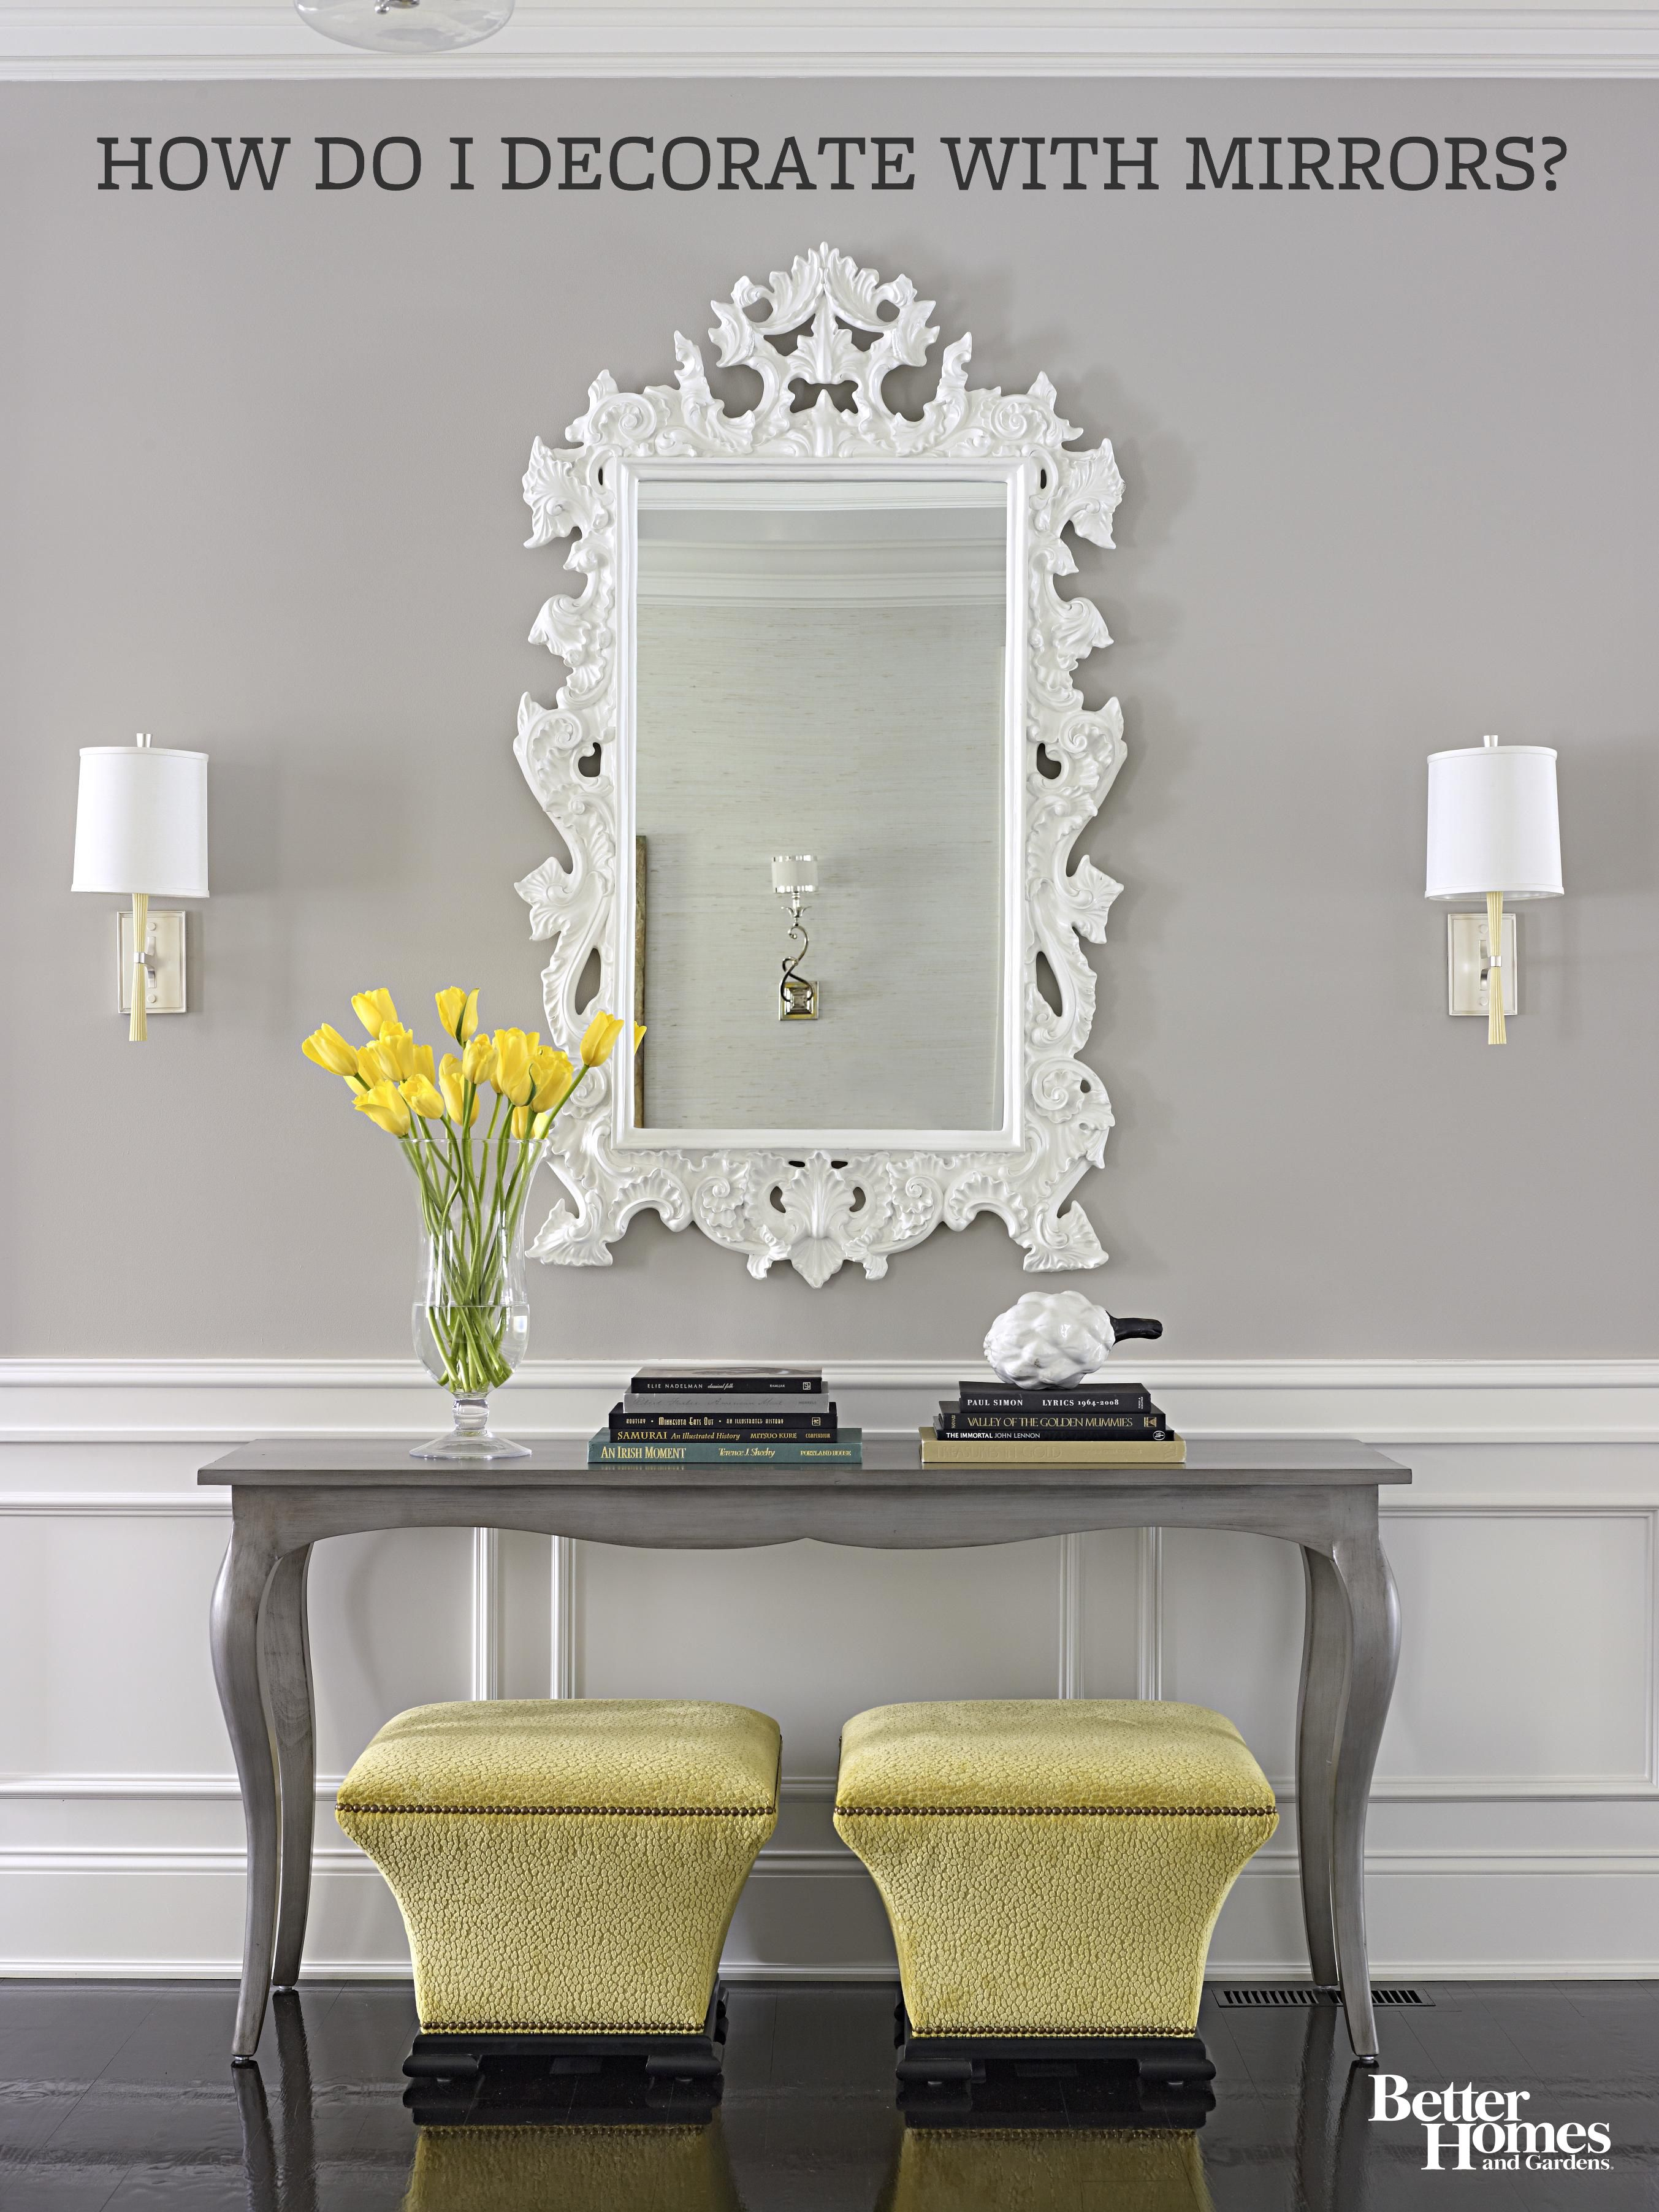 Brighten Your Space By Decorating With Mirrors Home Decor Mirror Decor Decor